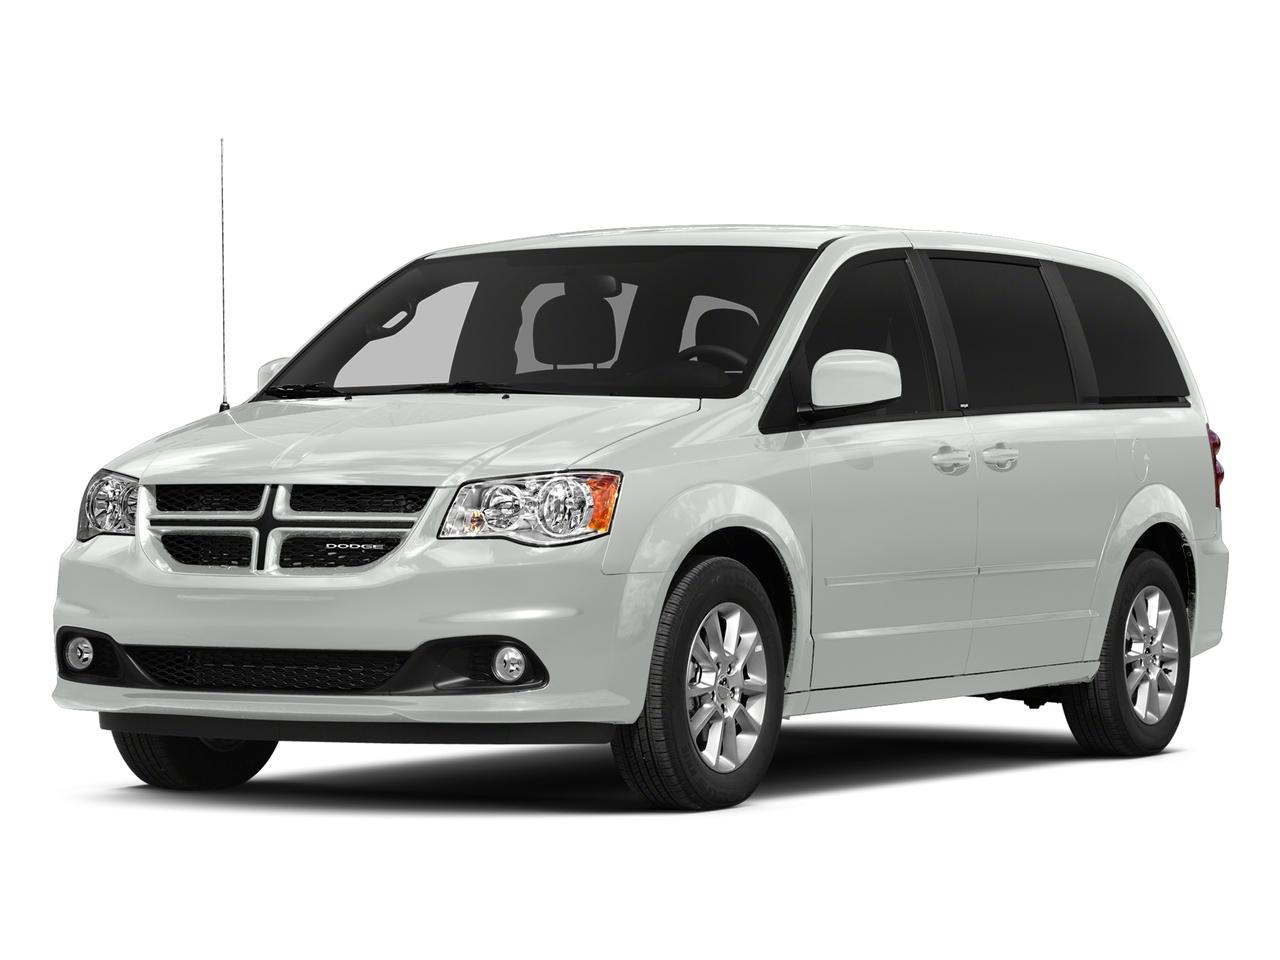 2016 Dodge Grand Caravan Vehicle Photo in Tucson, AZ 85712